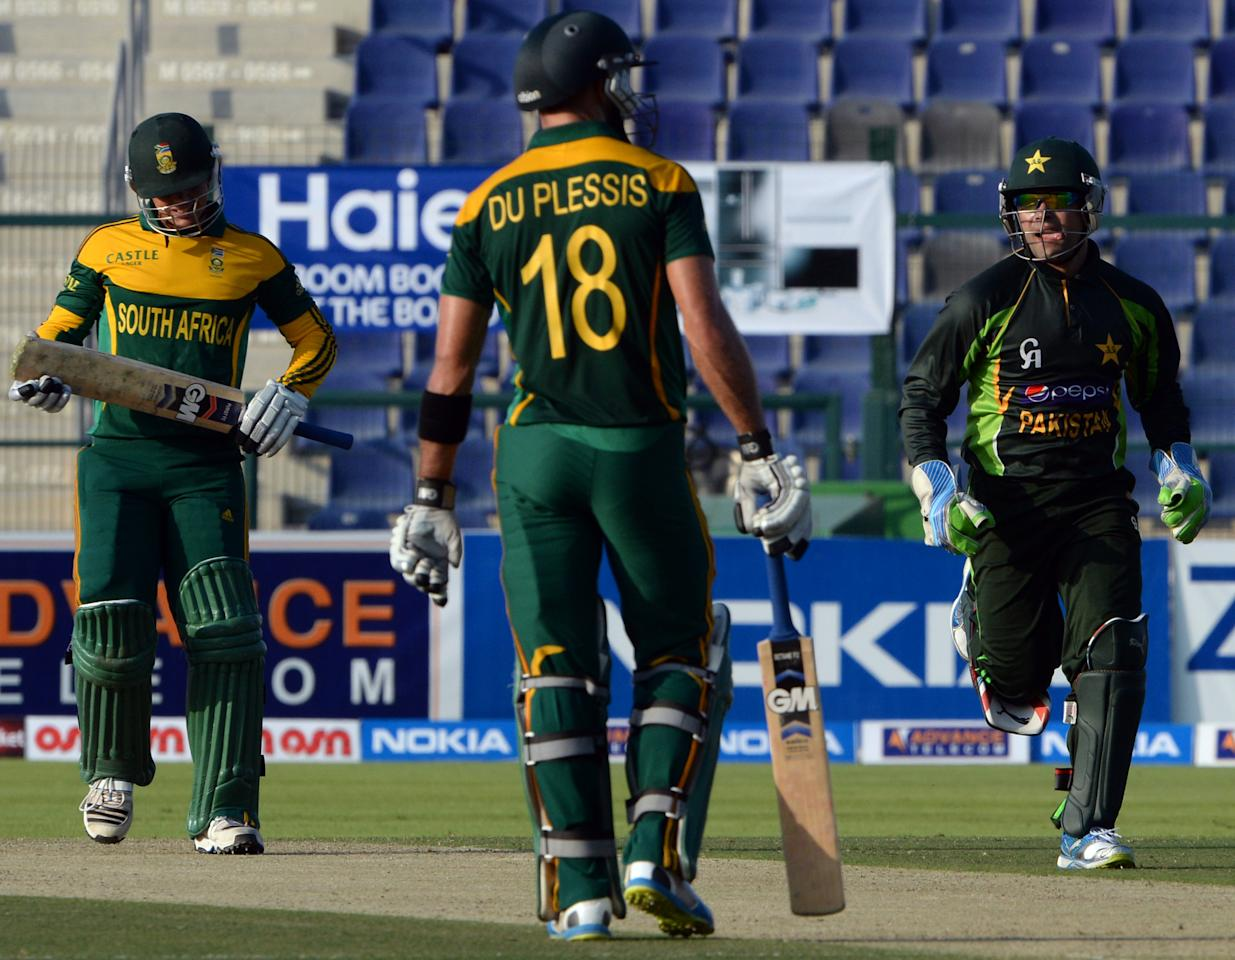 Pakistan's wicket keeper Umar Akmal (R) celebrates after successful stumps of South African batsman Quinton de Kock (L) during the third day-night international in Sheikh Zayed Cricket Stadium in Abu Dhabi on Novemver 6, 2013. South African captain AB de Villiers won the toss and decided to bat in the first. The five-match series is tied at 1-1. AFP PHOTO/ Asif HASSAN        (Photo credit should read ASIF HASSAN/AFP/Getty Images)